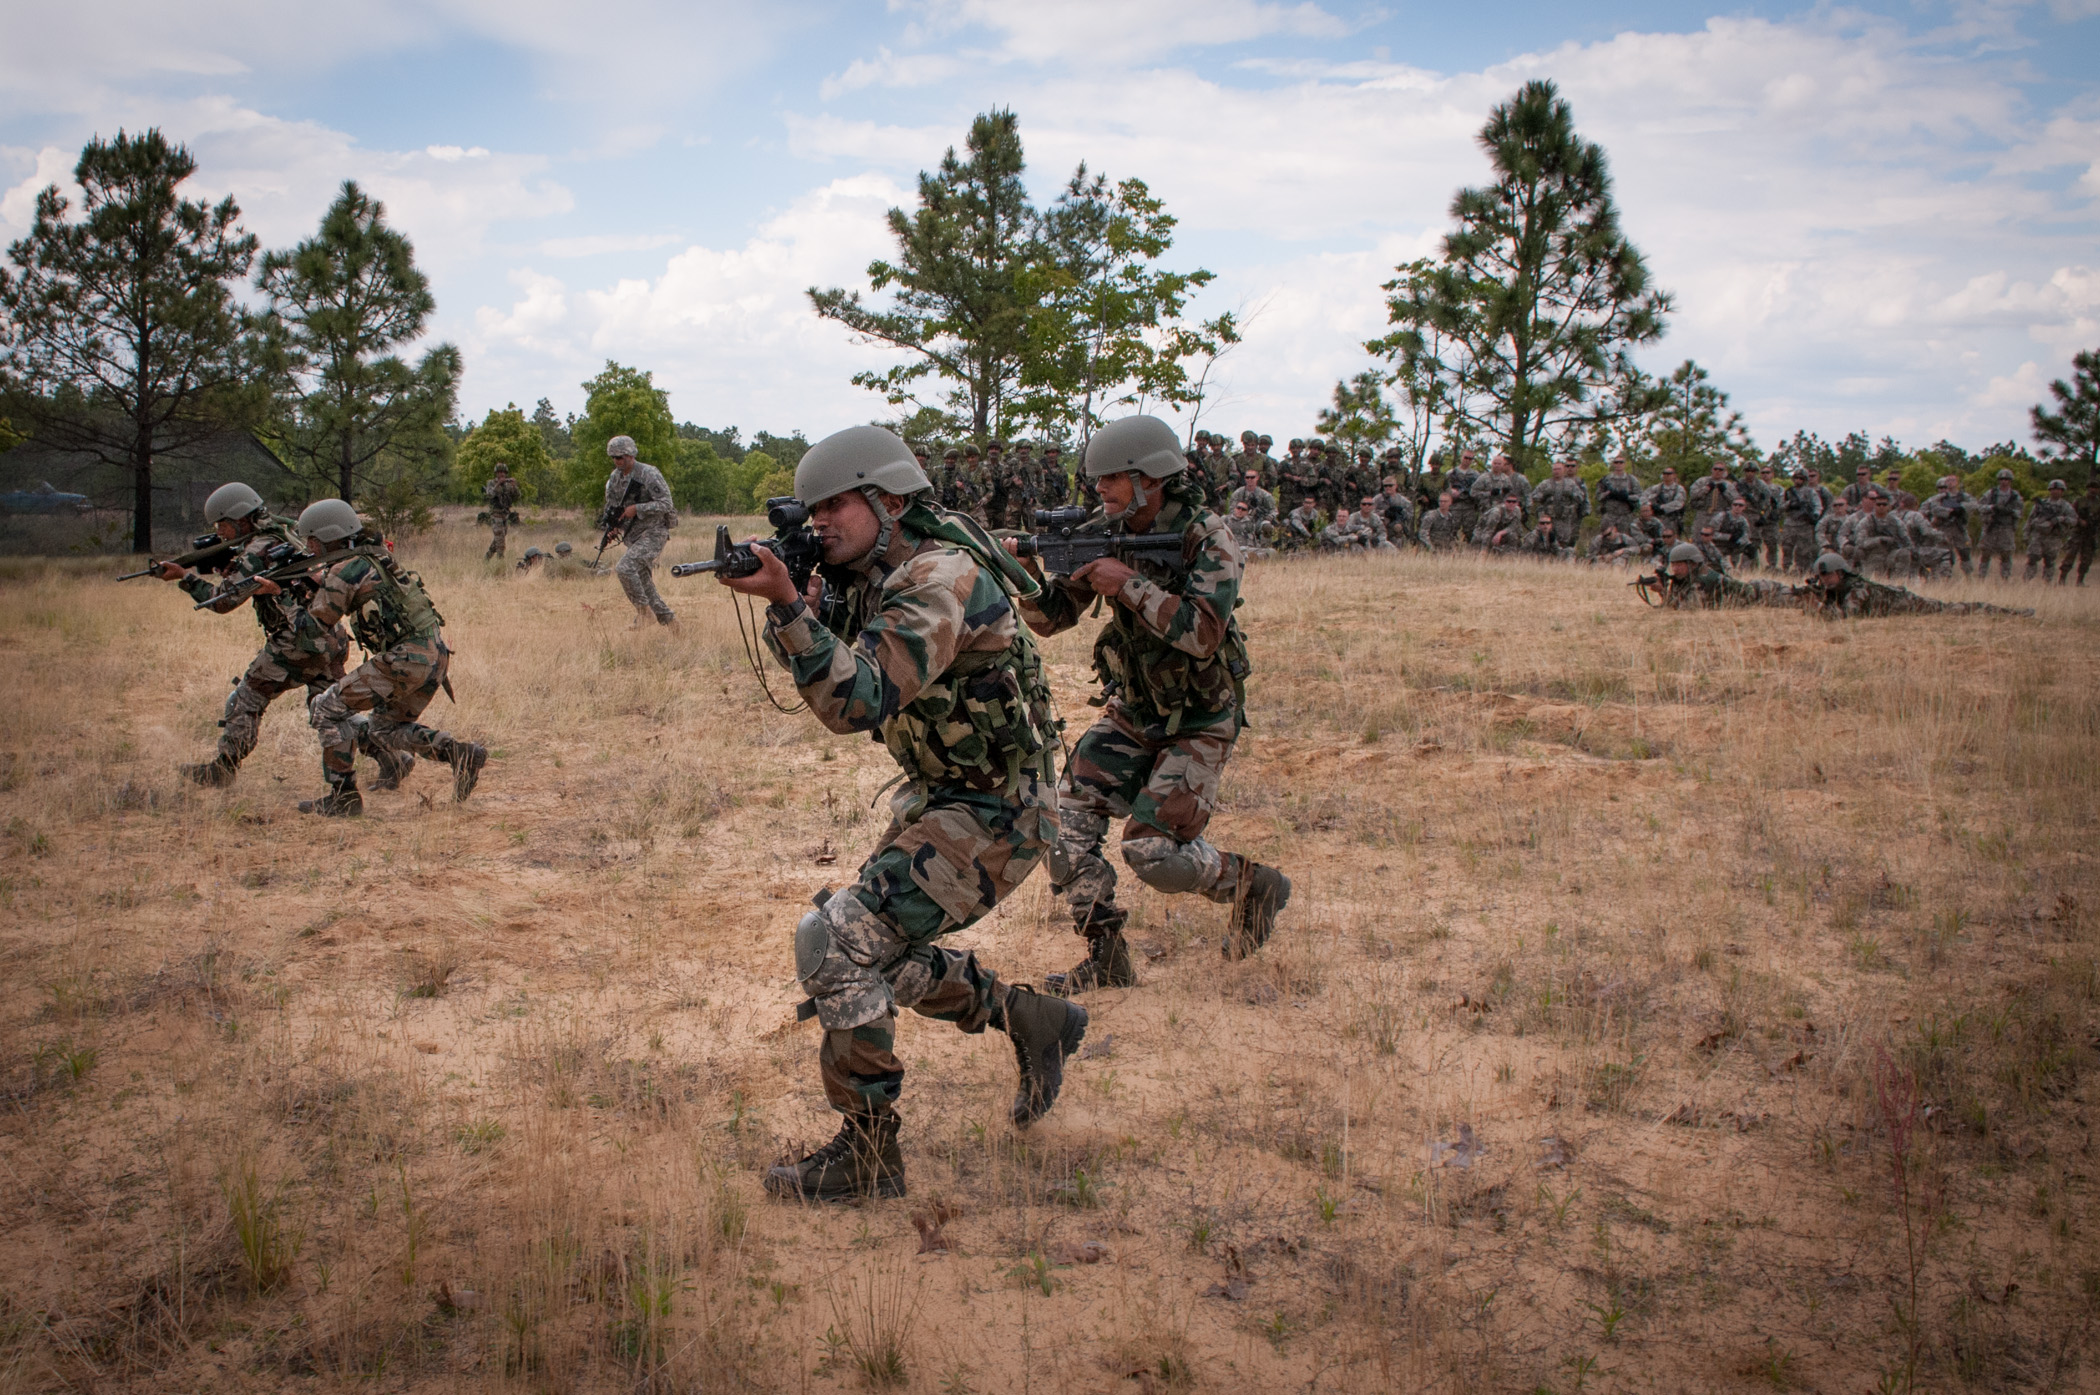 Soldiers of the Indian Army's 99th Mountain Brigade's 2nd Battalion, 5 Gorkha Rifles, during Yudh Abhyas 2013 at Fort Bragg